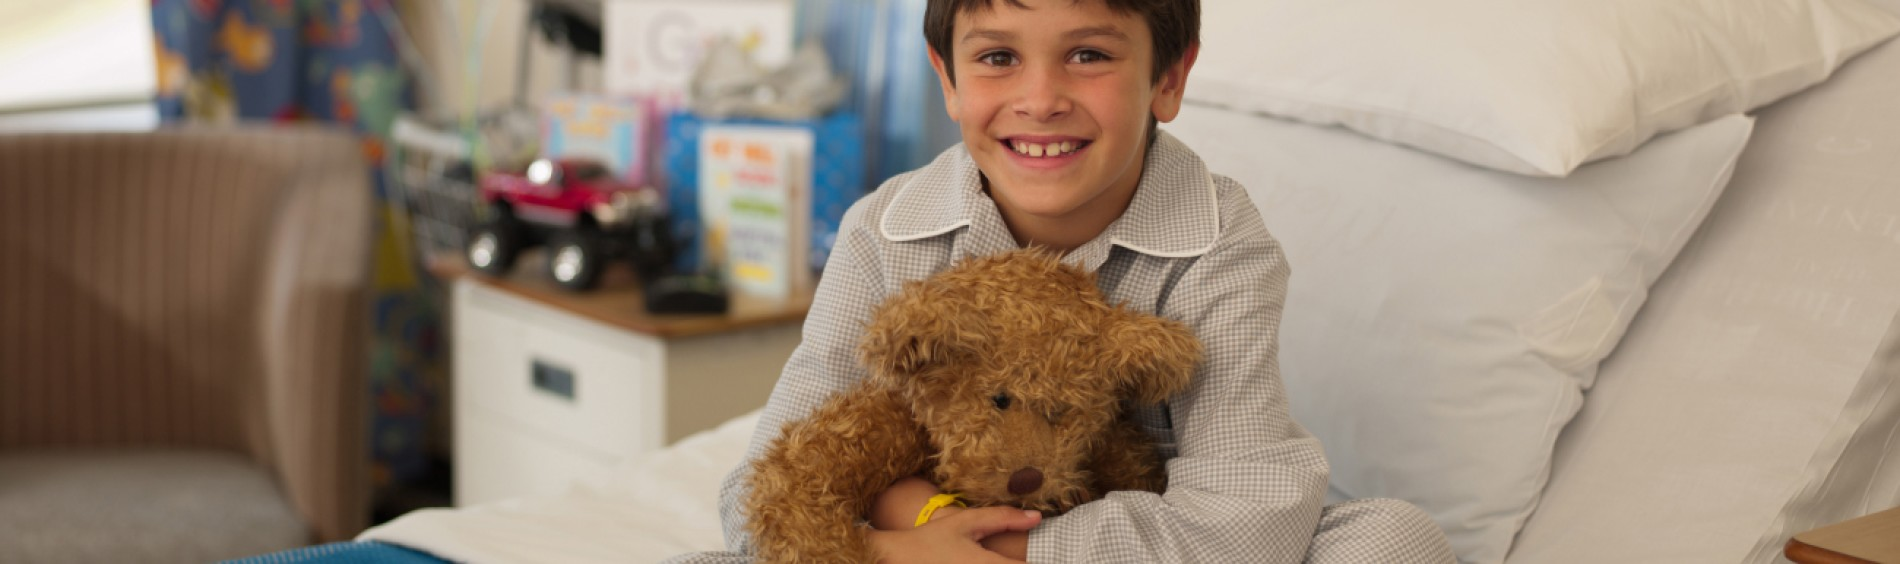 A boy in pyjamas smiles and hugs a teddy bear while sitting in a hospital room